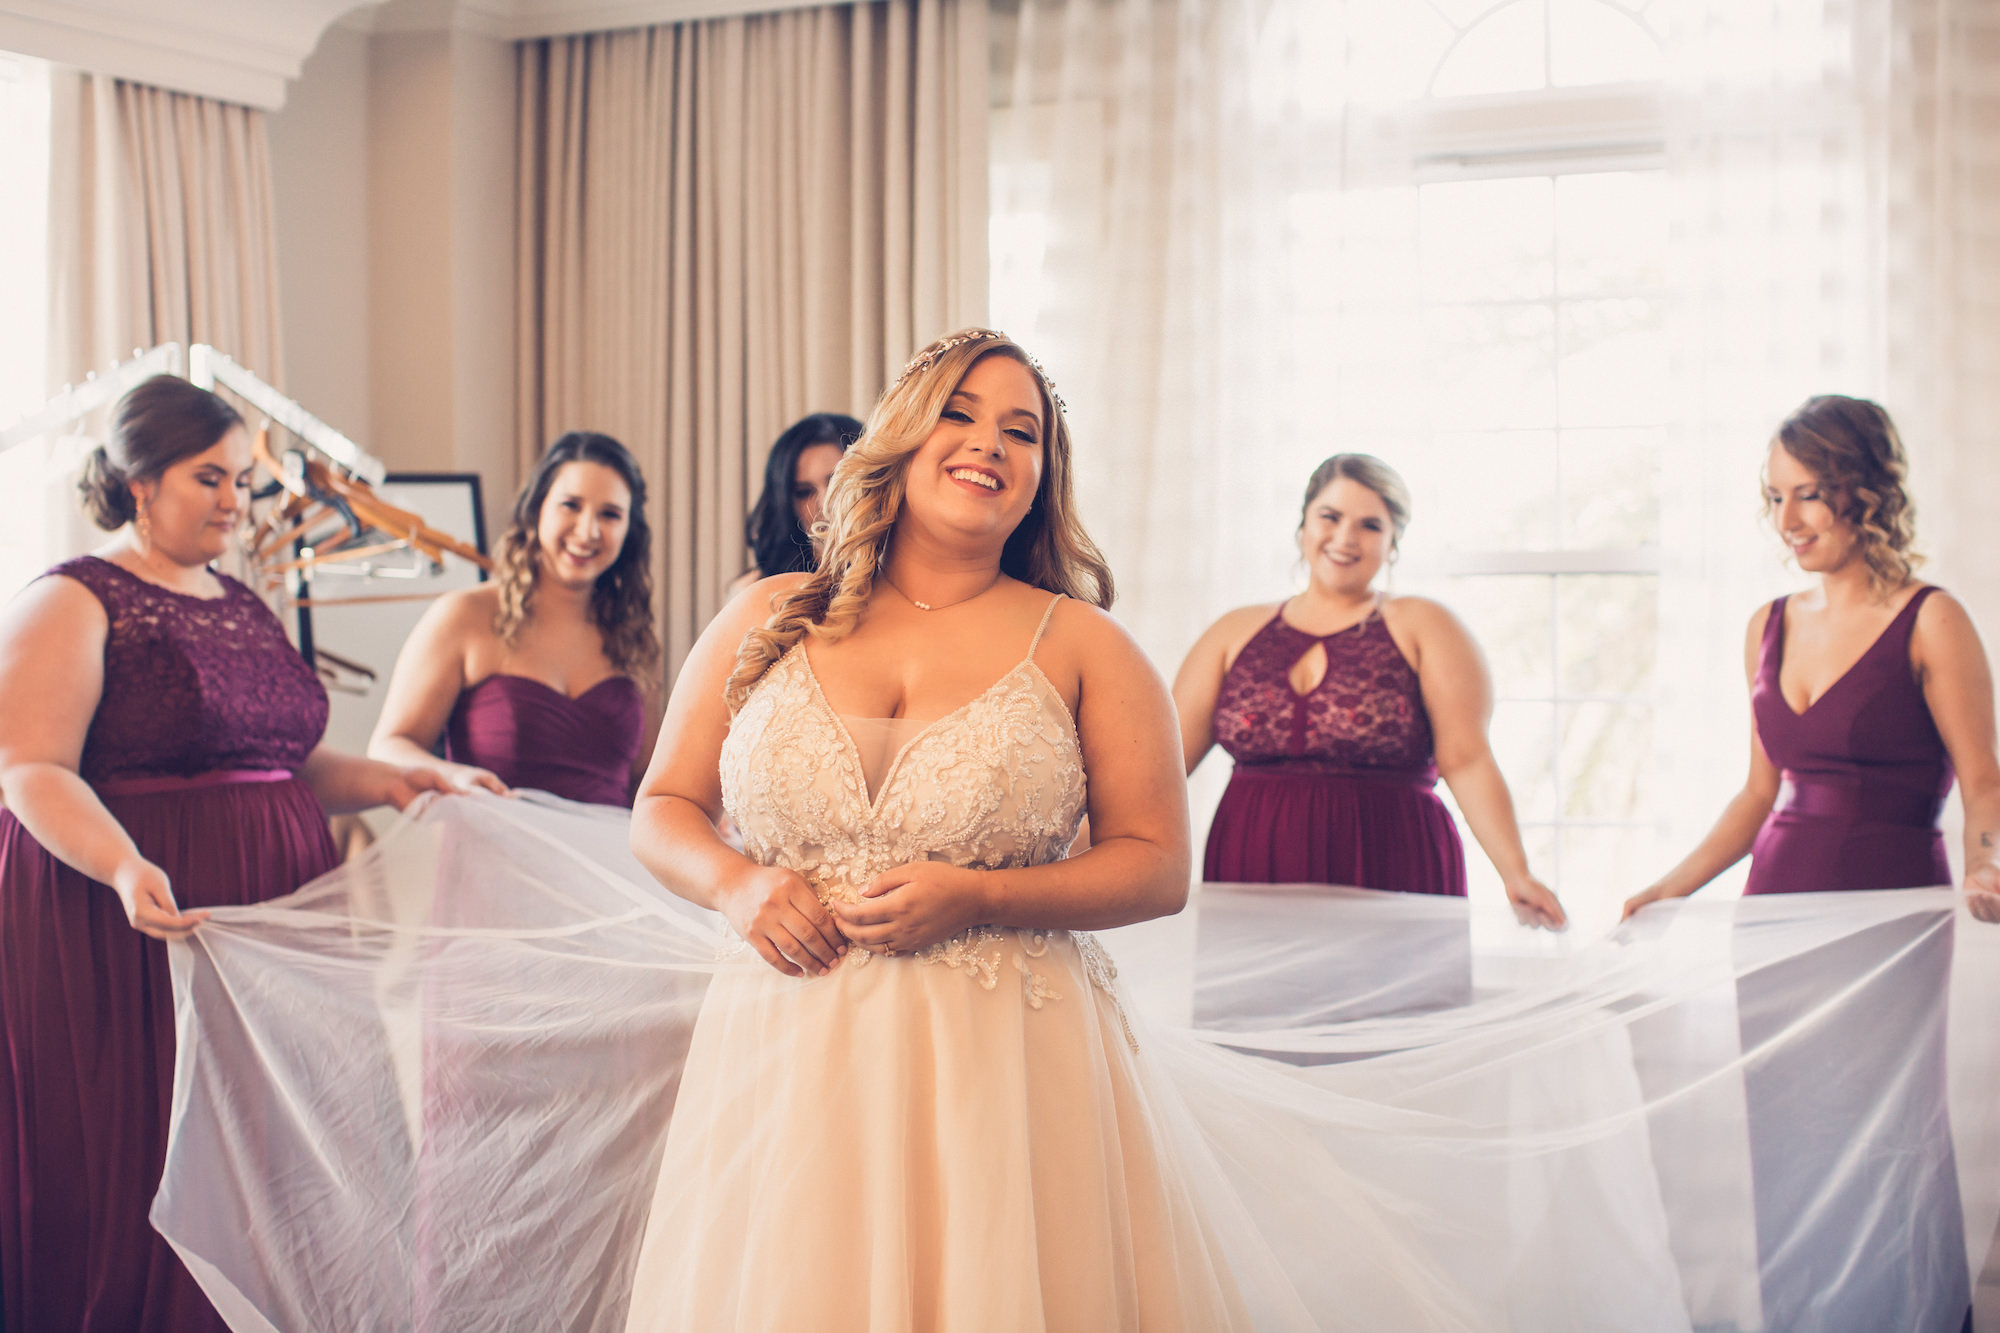 Tampa Bay Bride Getting Ready Wedding Portrait in Lace and Illusion V Neck Spaghetti Strap Bodice with Tulle Skirt, Bridesmaids in Burgundy Mix and Match Dresses | Wedding Photographer Luxe Light Images | St. Pete Wedding Hair and Makeup Michele Renee the Studio